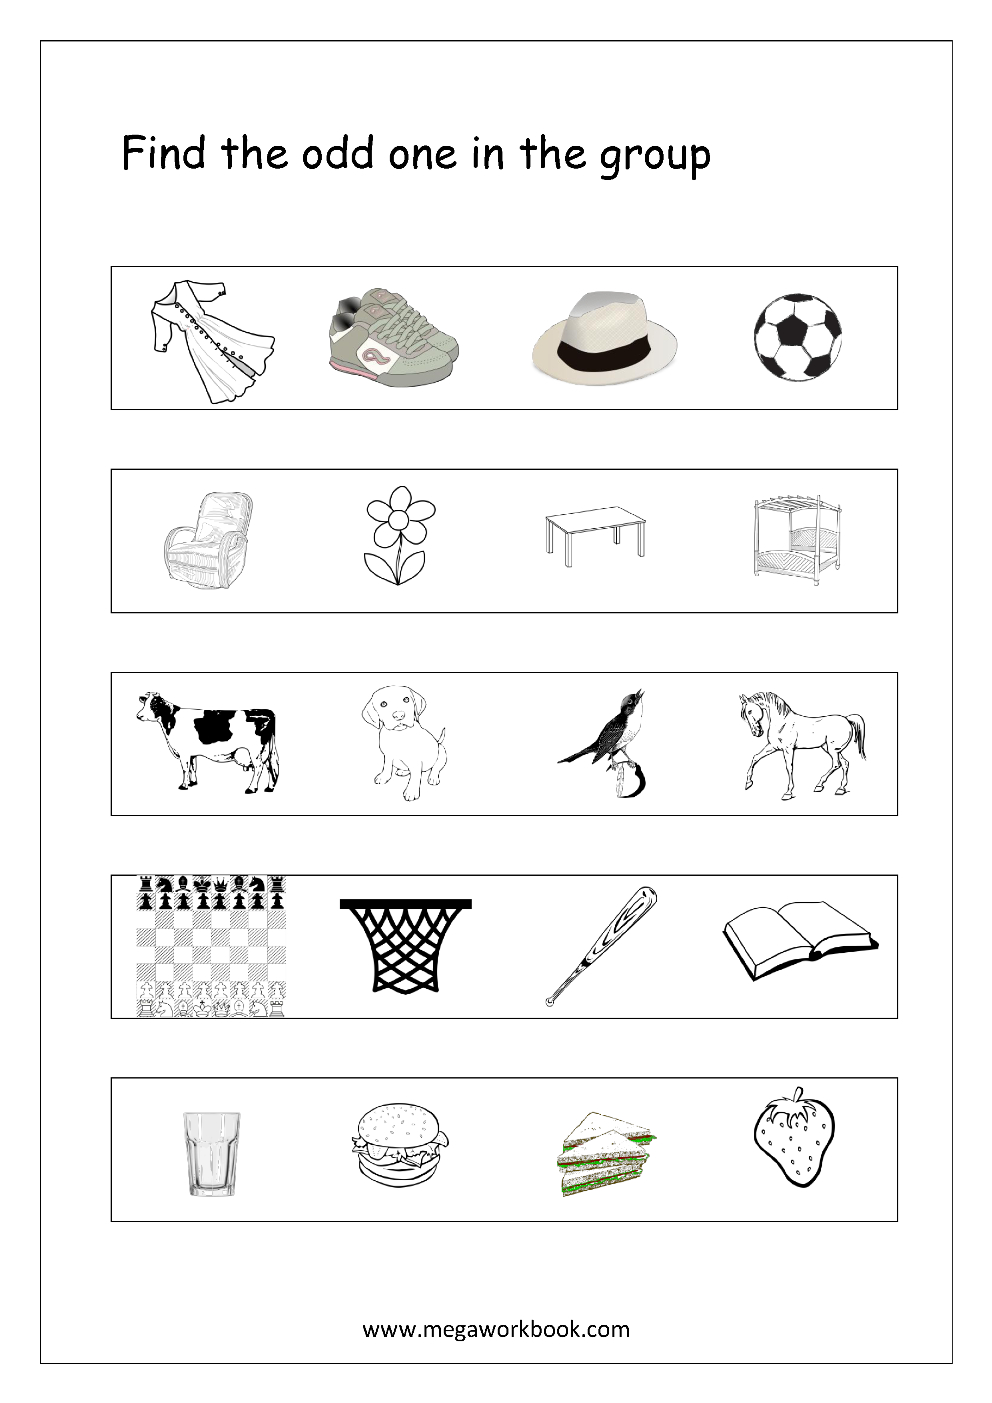 Free General Aptitude Worksheets - Odd One Out - Megaworkbook - Free Printable Worksheets For Kids Science